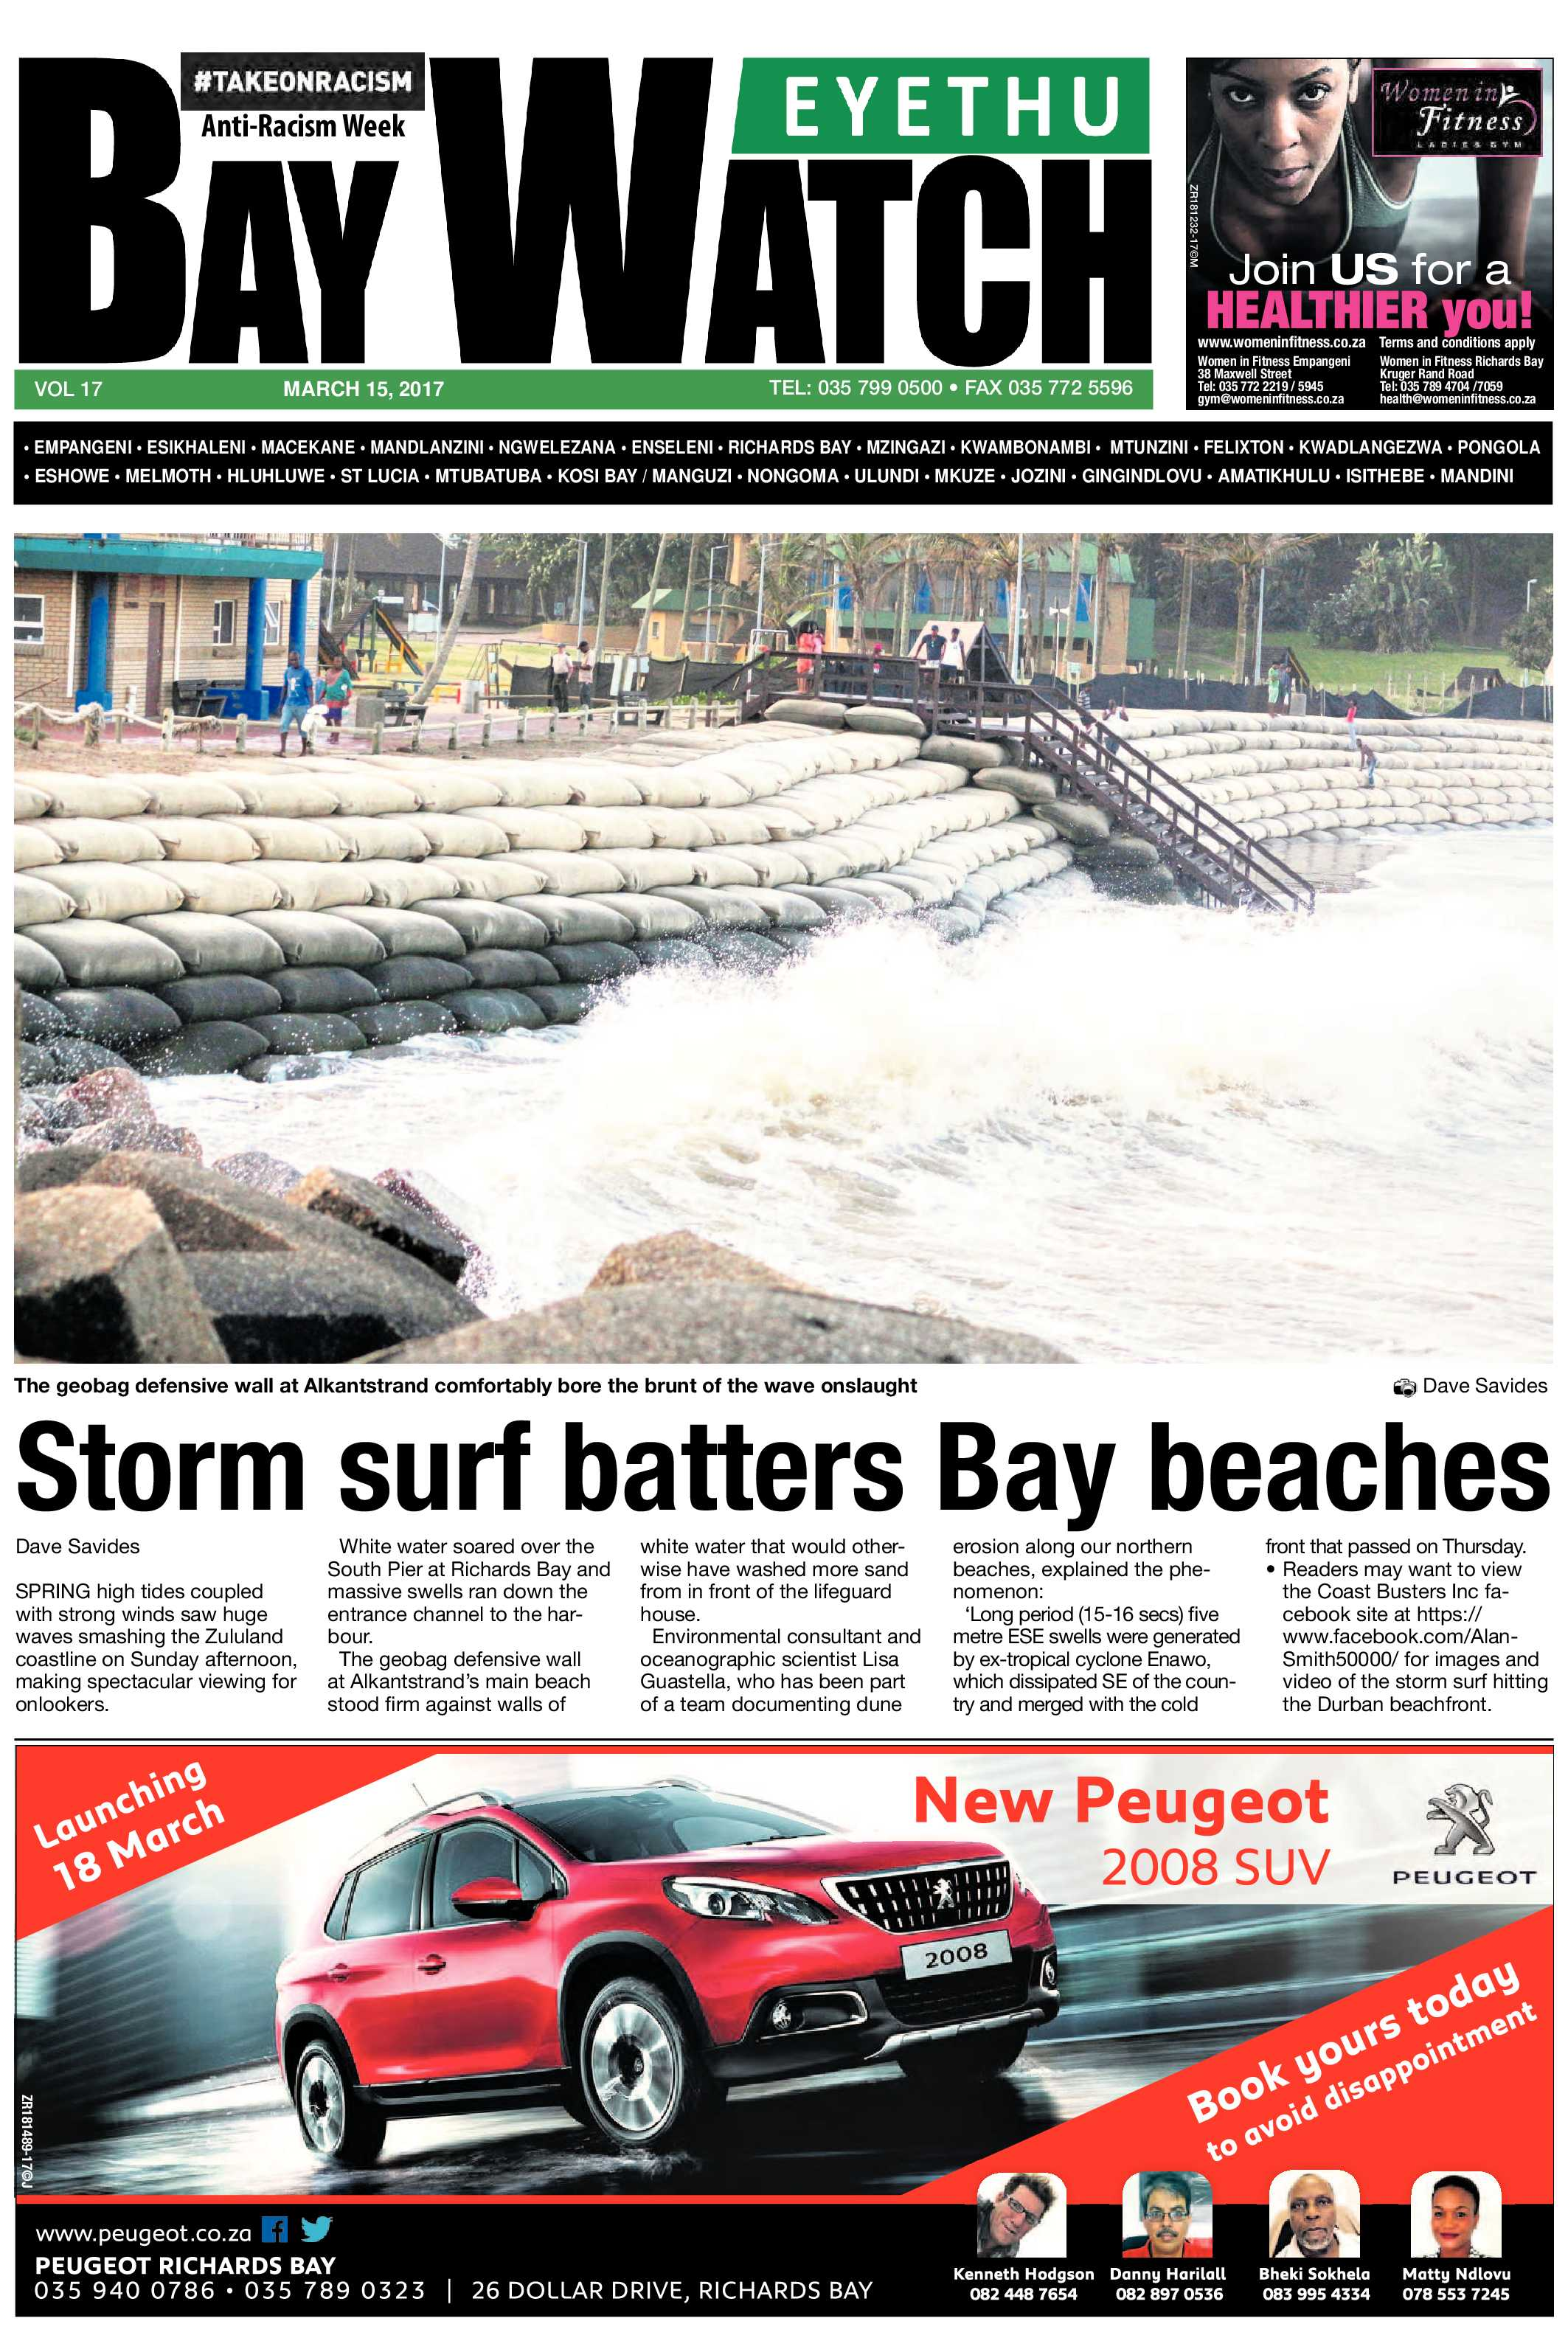 eyethu-baywatch-15-march-epapers-page-1